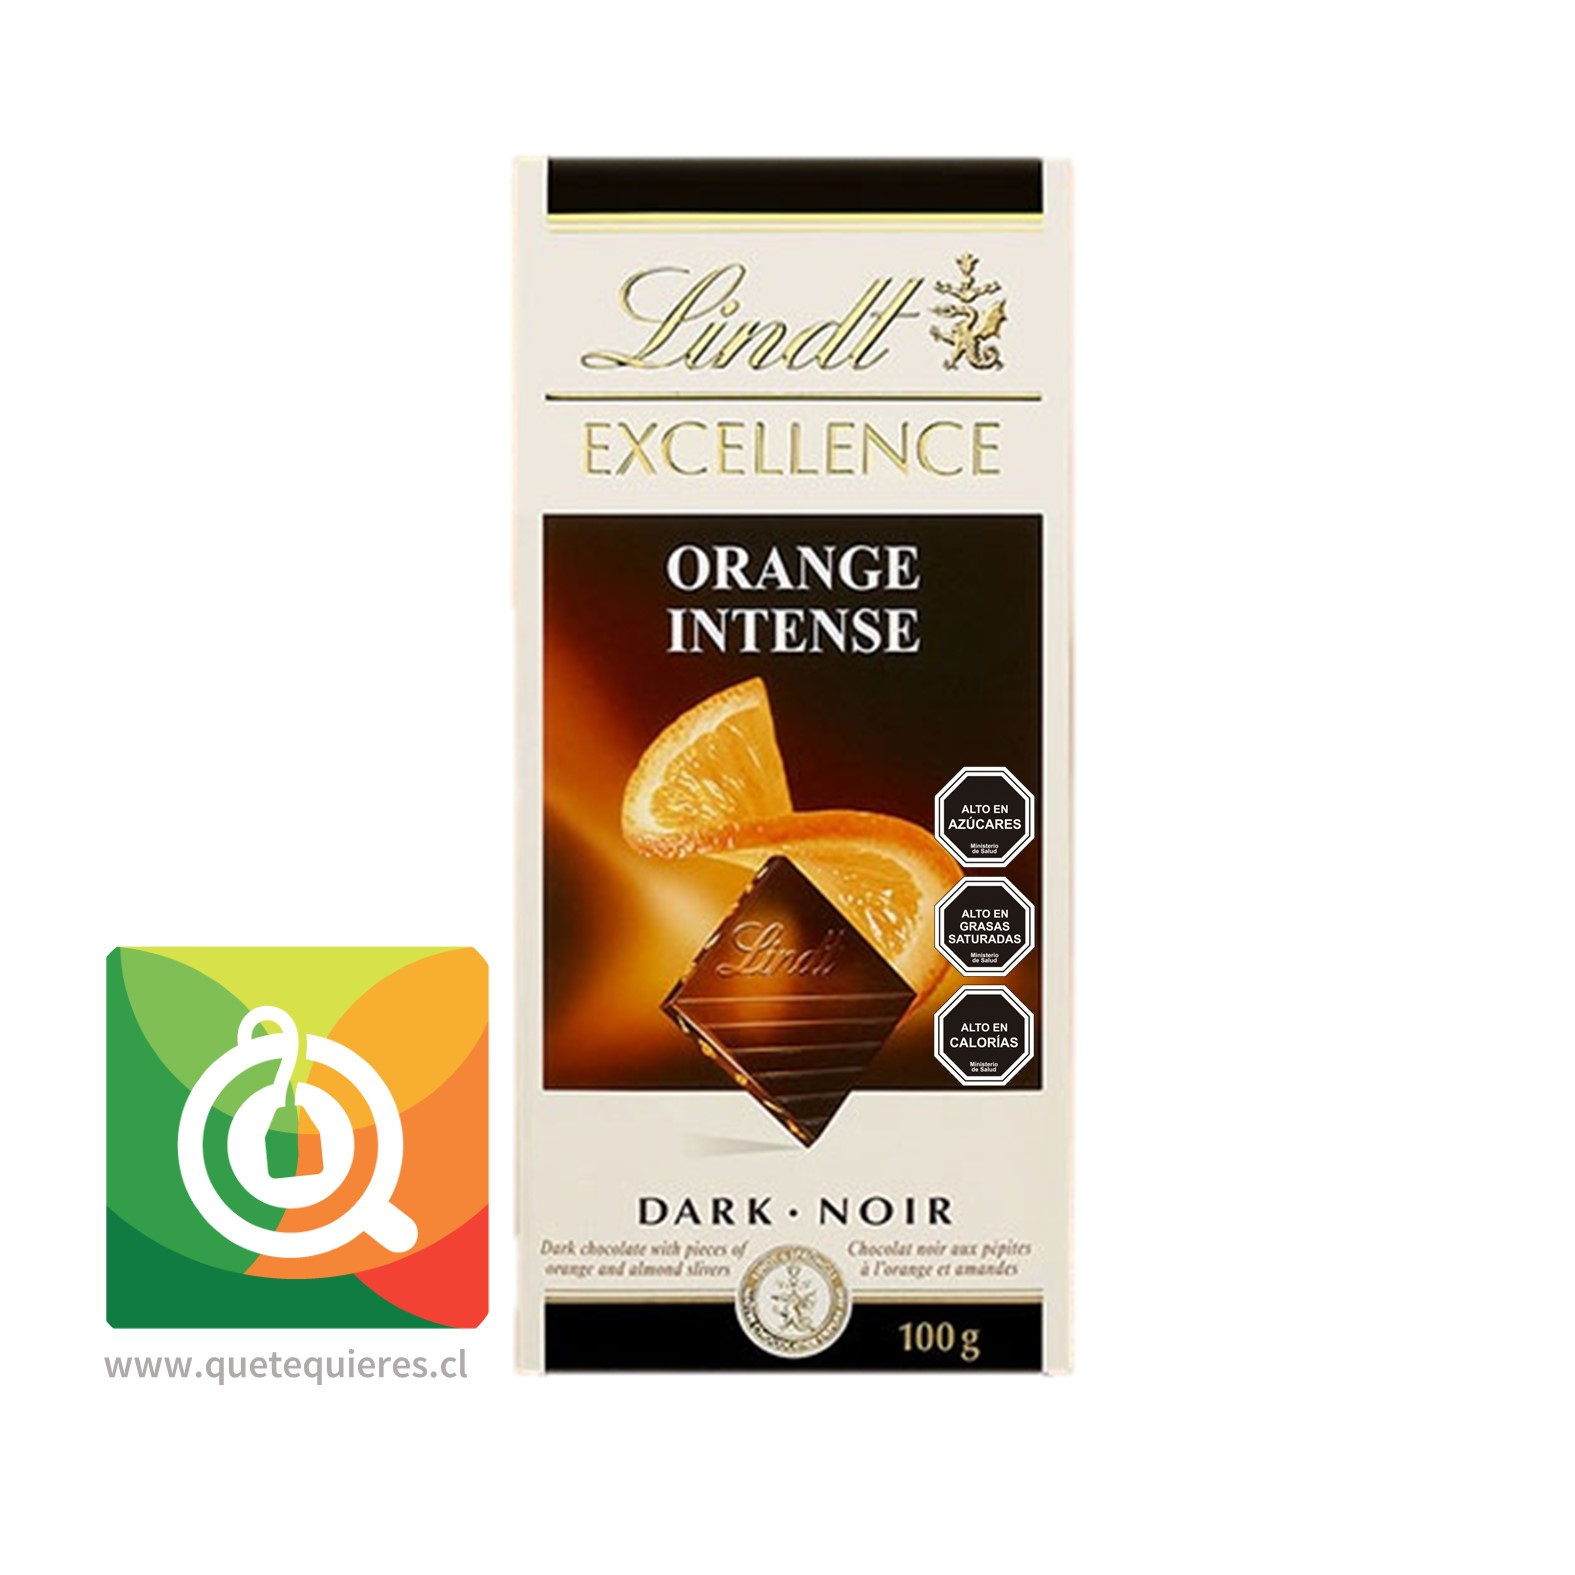 Lindt Chocolate Barra Excellence Intenso Naranja